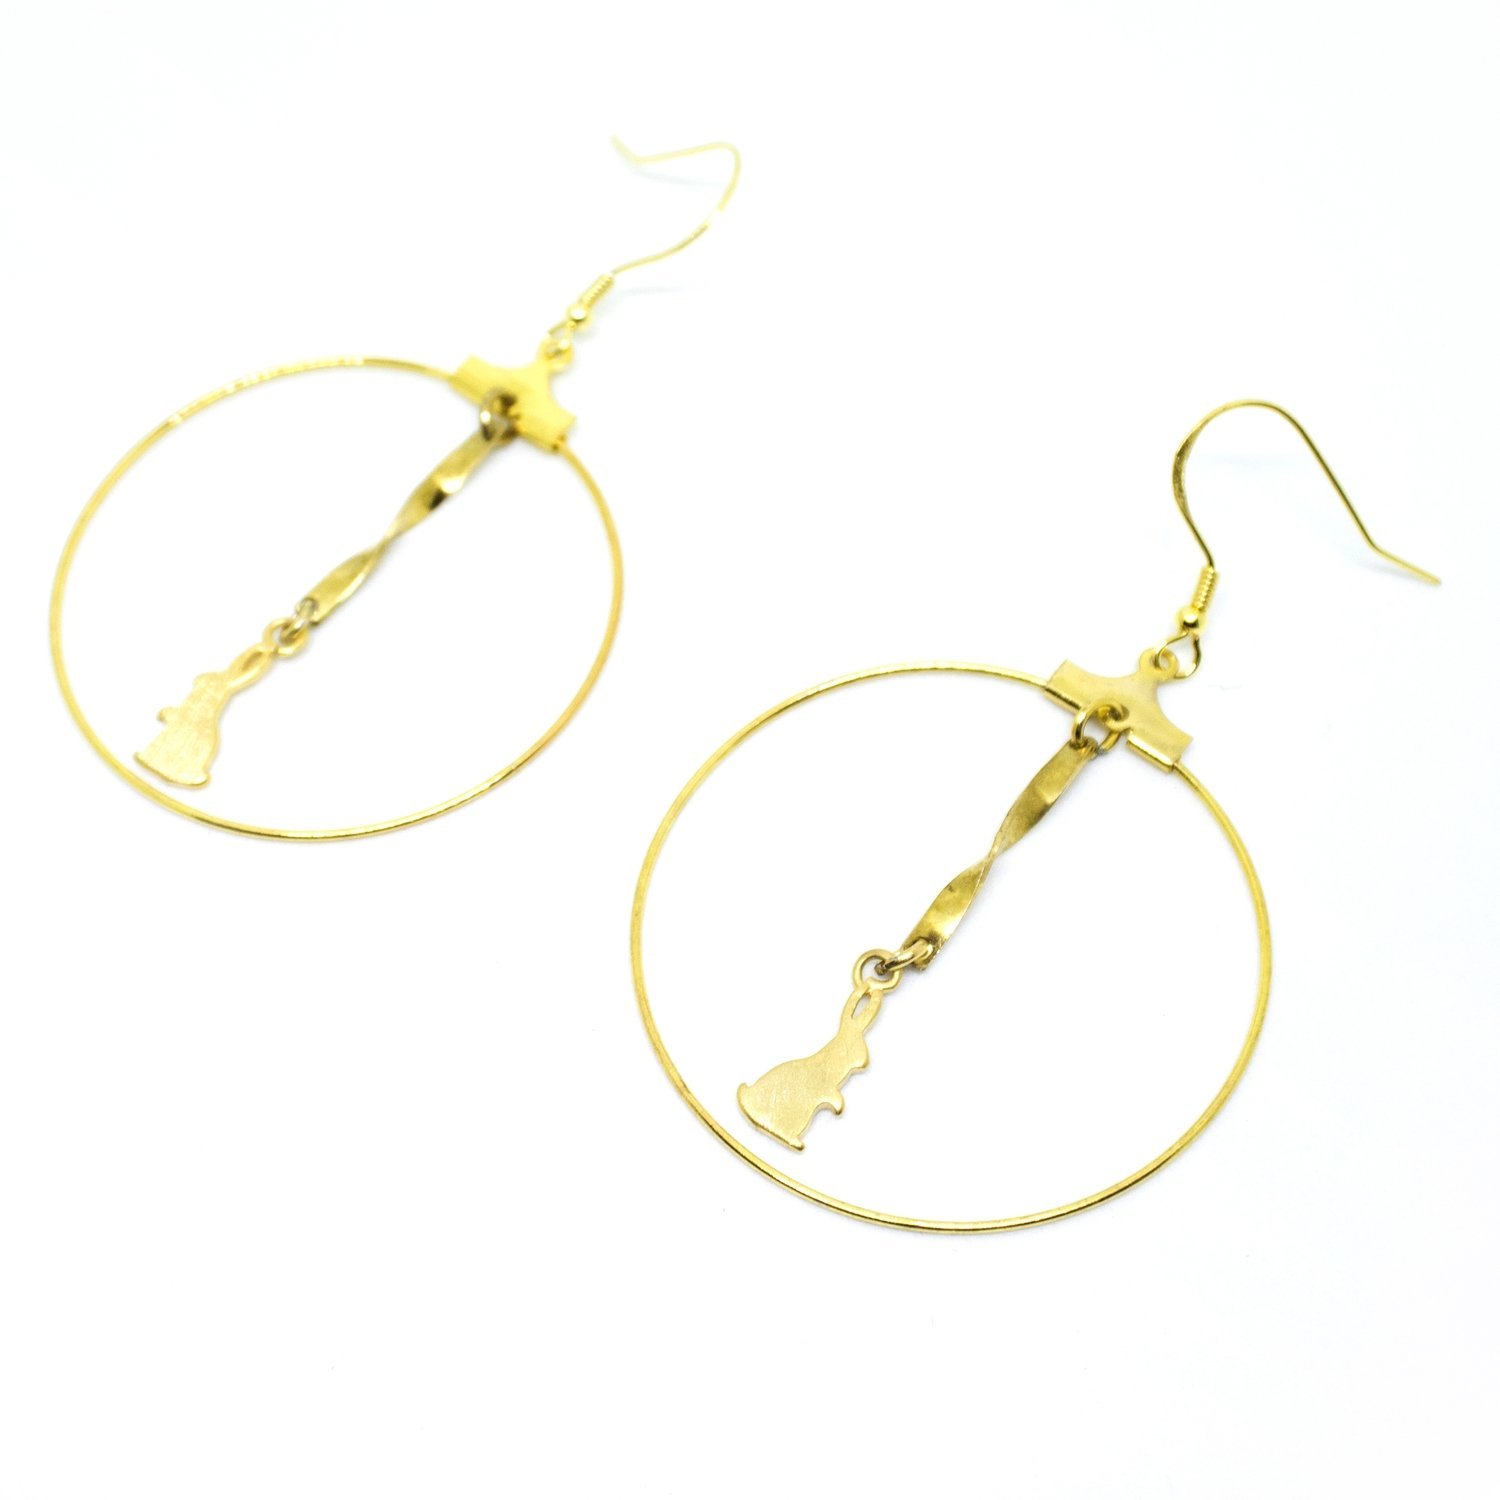 Rabbit and the ribbon — round earrings, 925 golden hook, full moon, handmade, Hong Kong, fashion jewellery